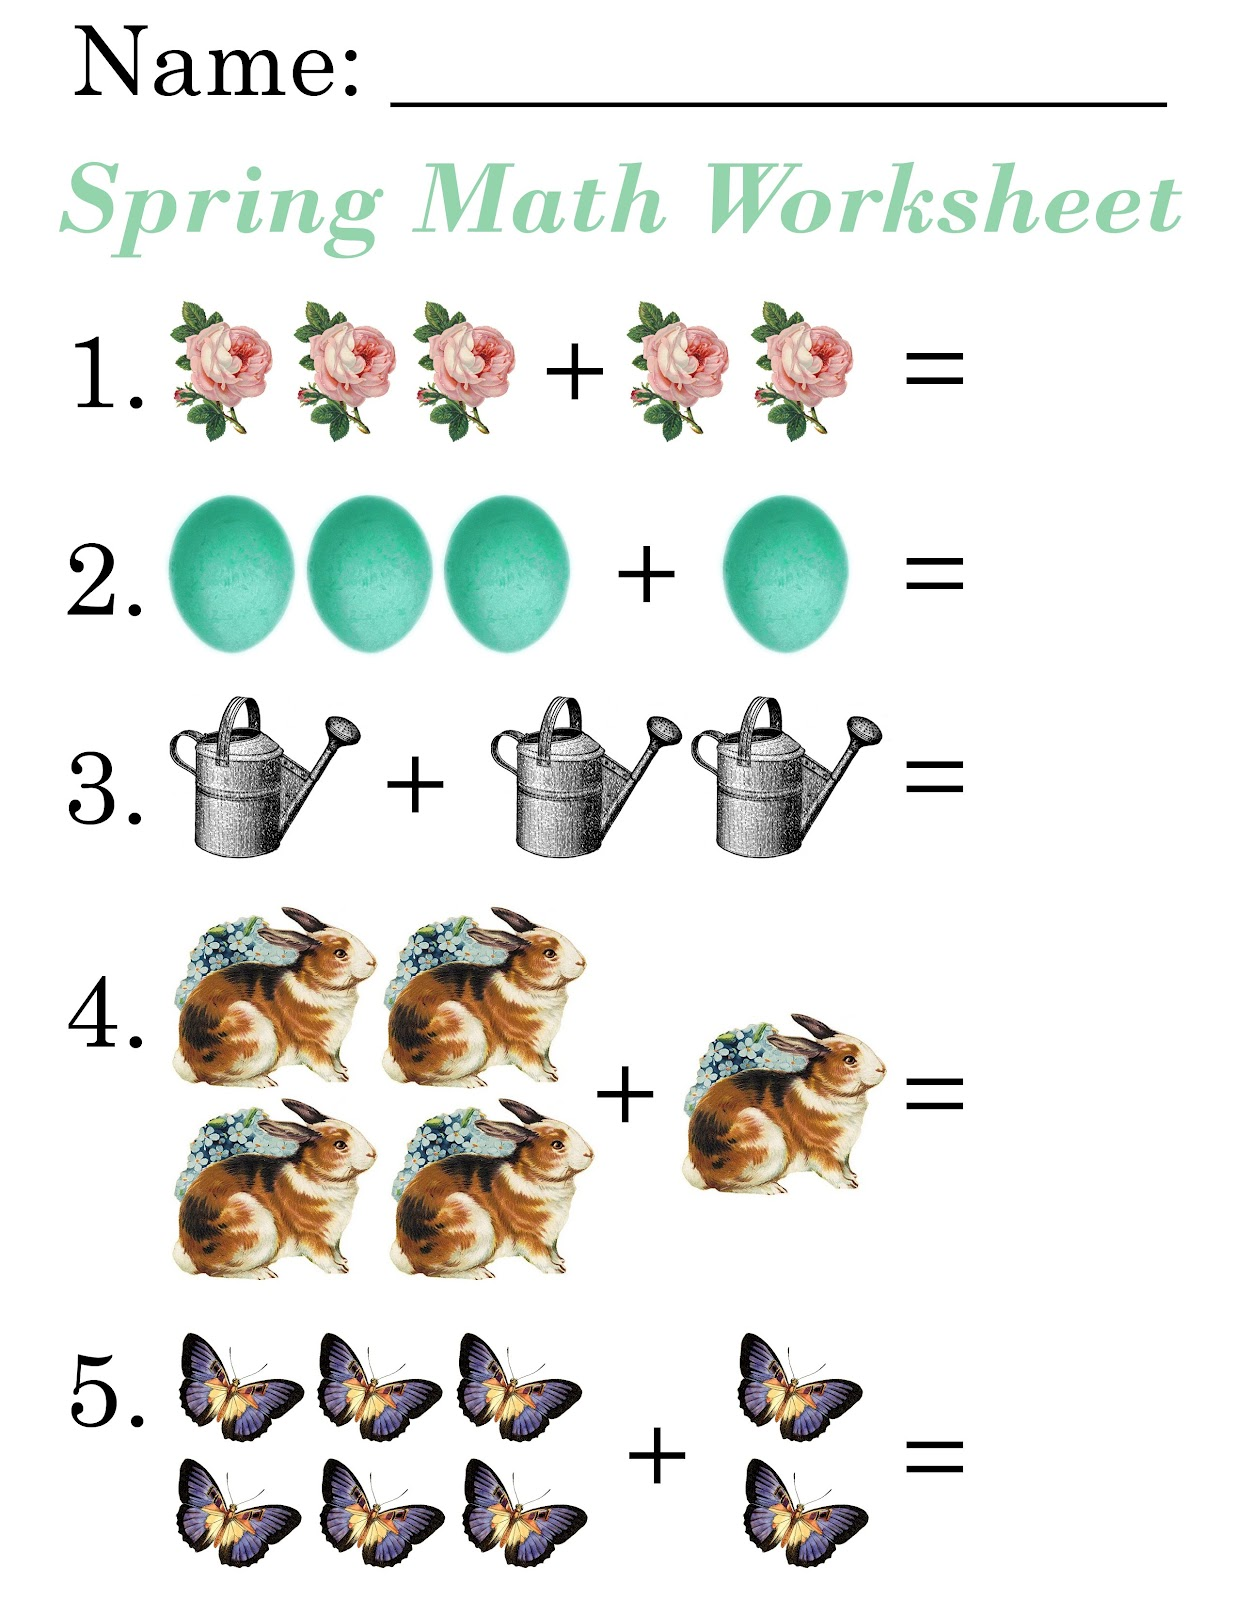 math worksheet : 7 year olds clipart  clipart kid : Maths Worksheets For 6 Year Olds